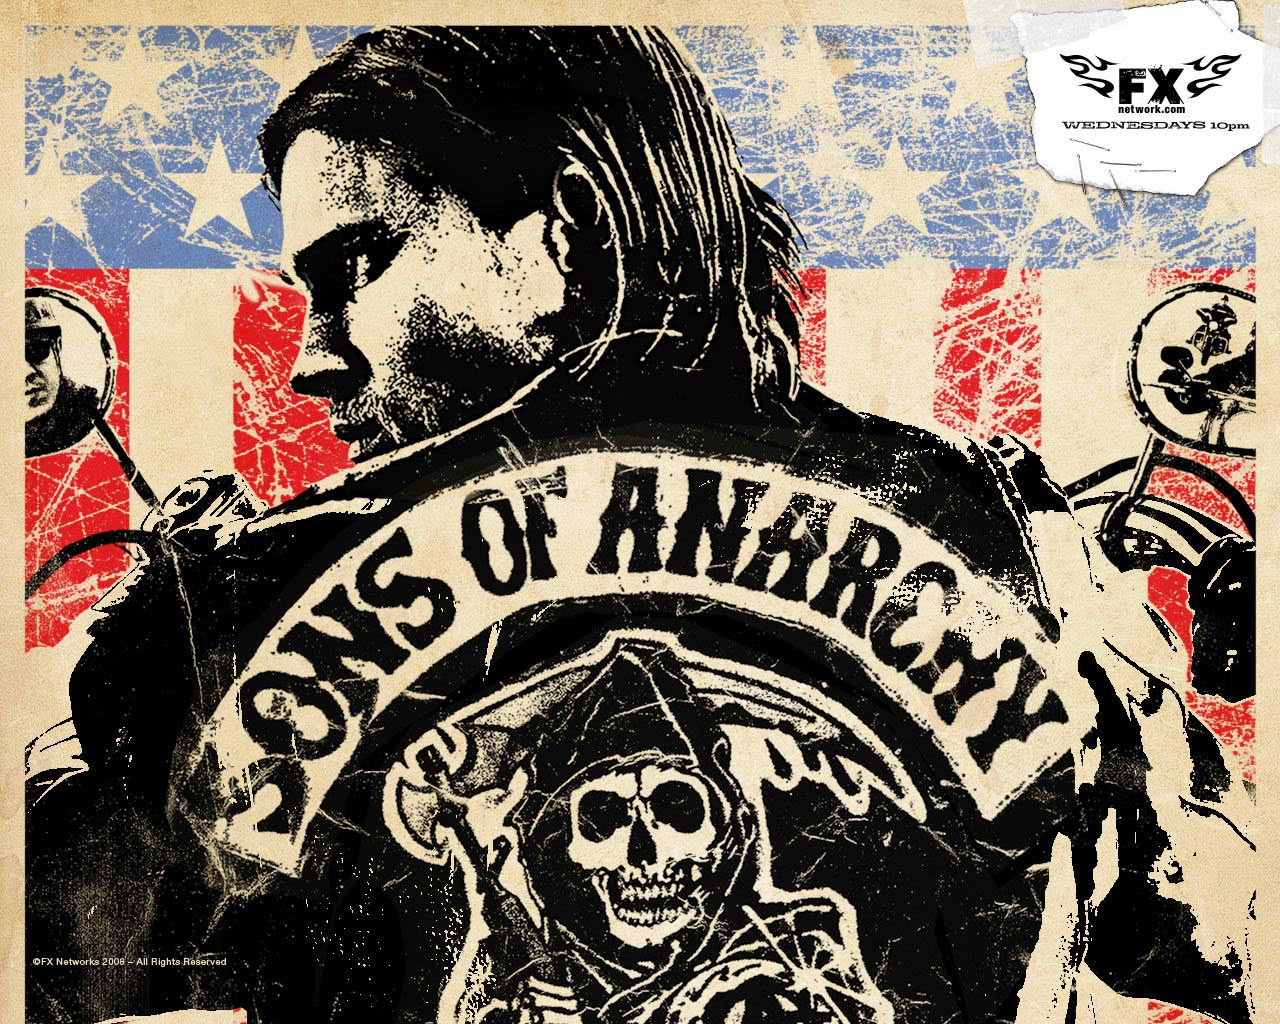 SOA or Sons of Anarchy